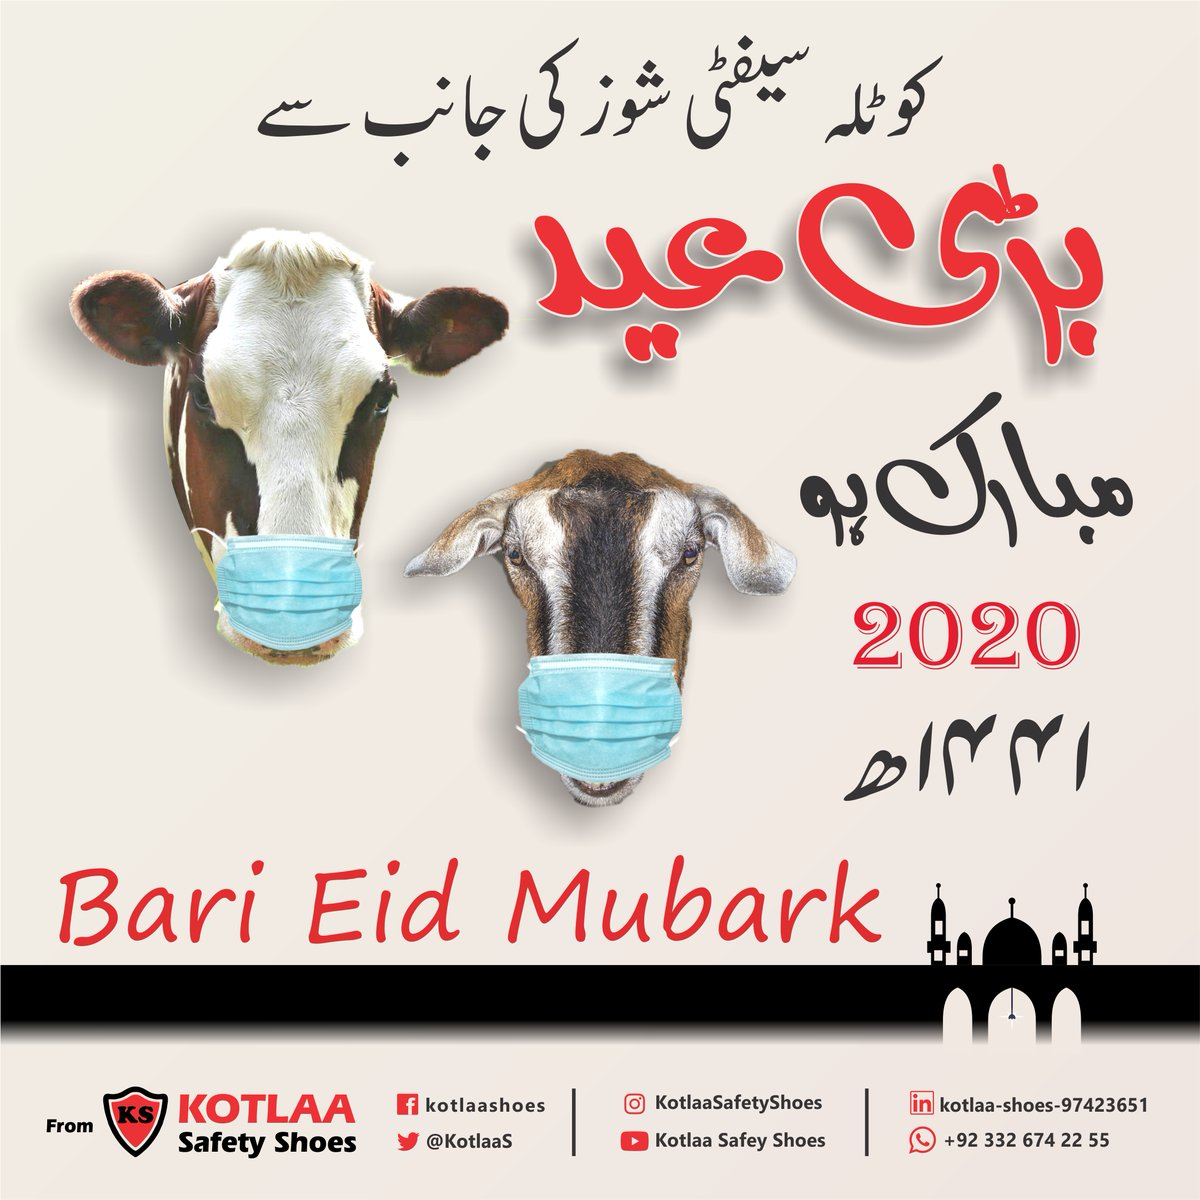 Save & share for #Eid #Day pic.twitter.com/S2RUkY95O3